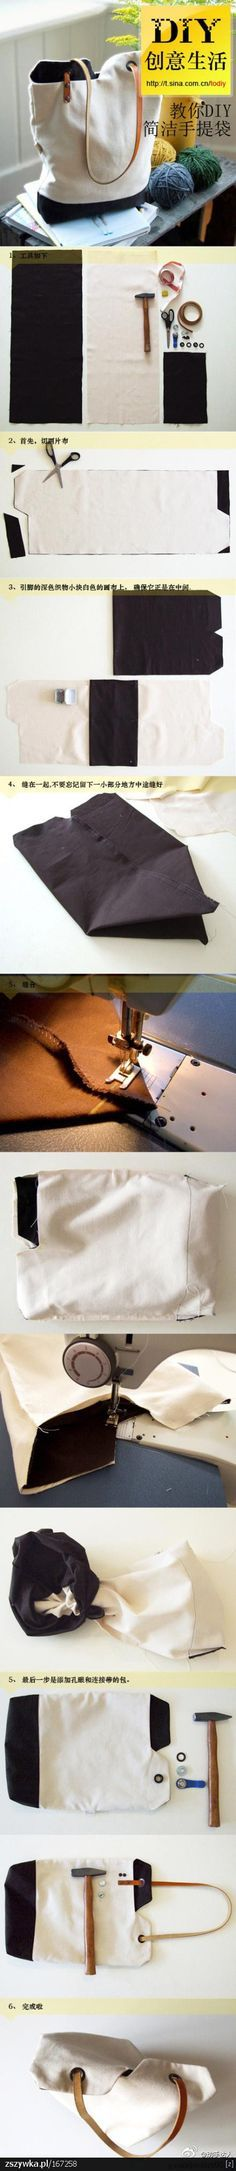 LOVE THE HANDLES DIY Canvas Bag! This is a great How to on how to make a simple carry all. Use your fabric materials such as velvet, flannel, felt or burlap to make your own two tone bag. Just thought this was cool! Sewing Tutorials, Sewing Crafts, Sewing Projects, Sewing Patterns, Diy Crafts, Bag Patterns, Diy Sac Pochette, Ideas Paso A Paso, Simple Bags